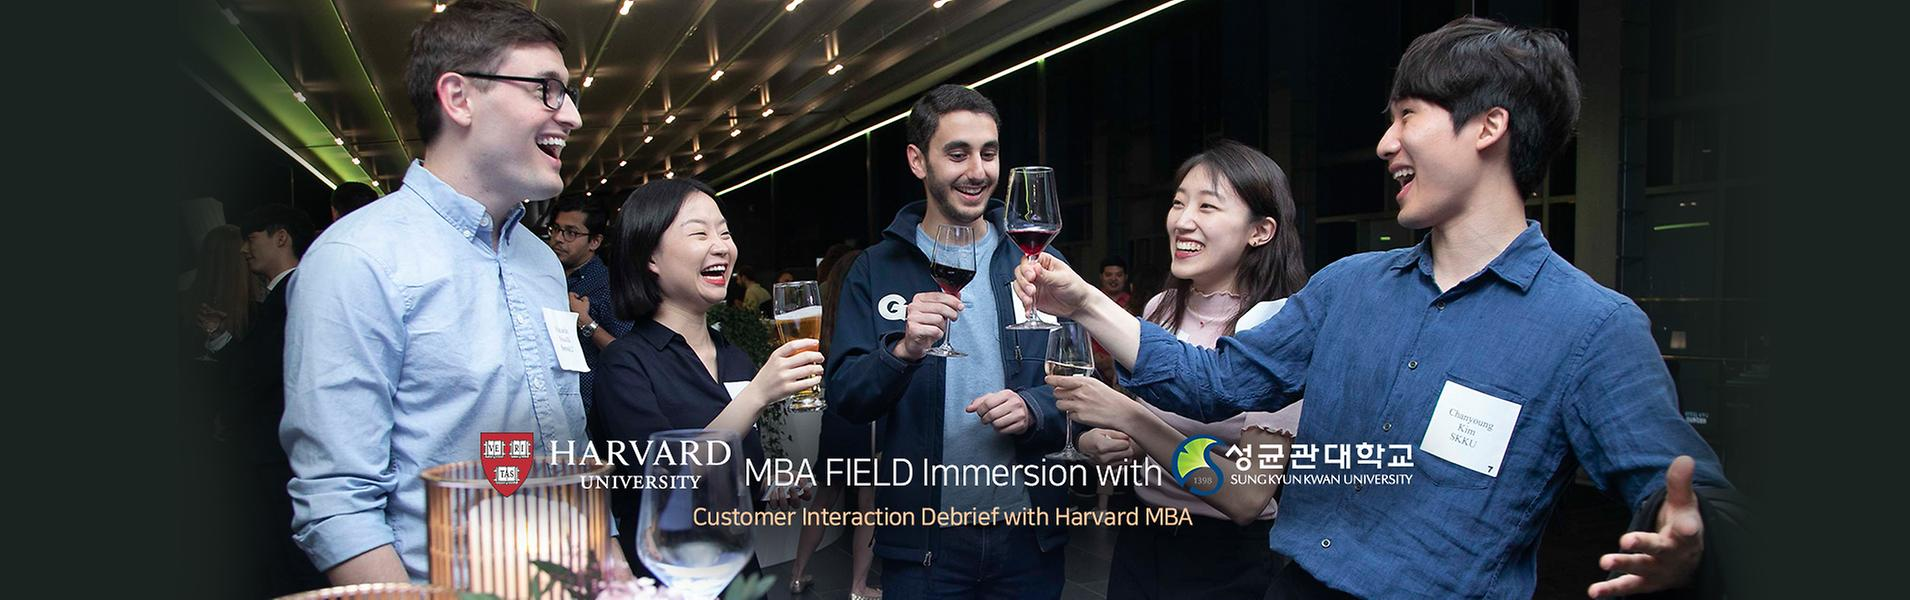 MBA FIELD Immersion with